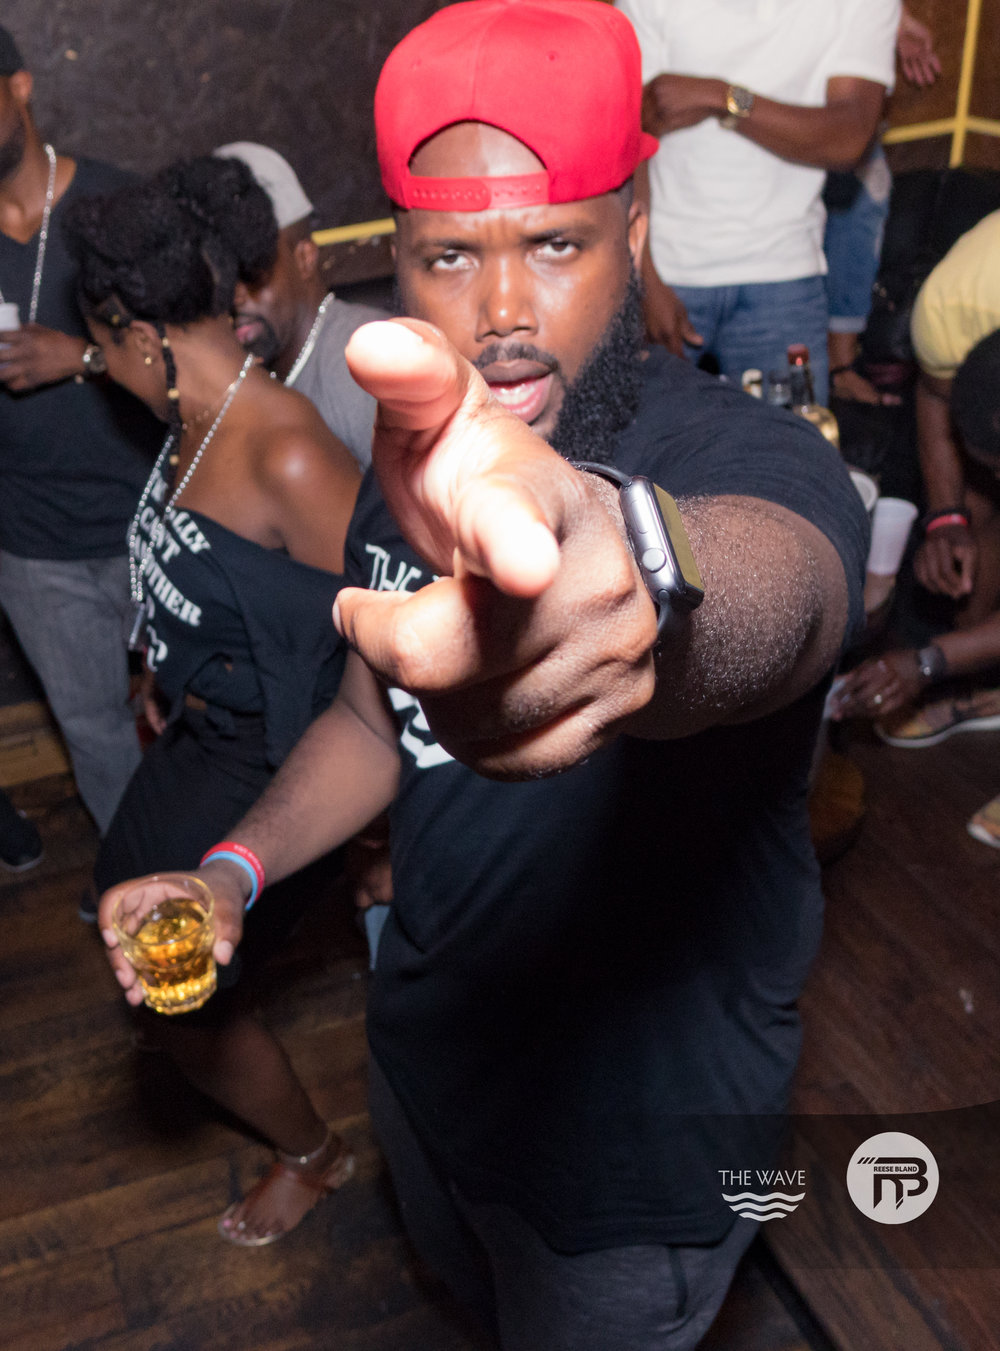 RB-WaveDC-BlkBarCrawl2-01588.jpg